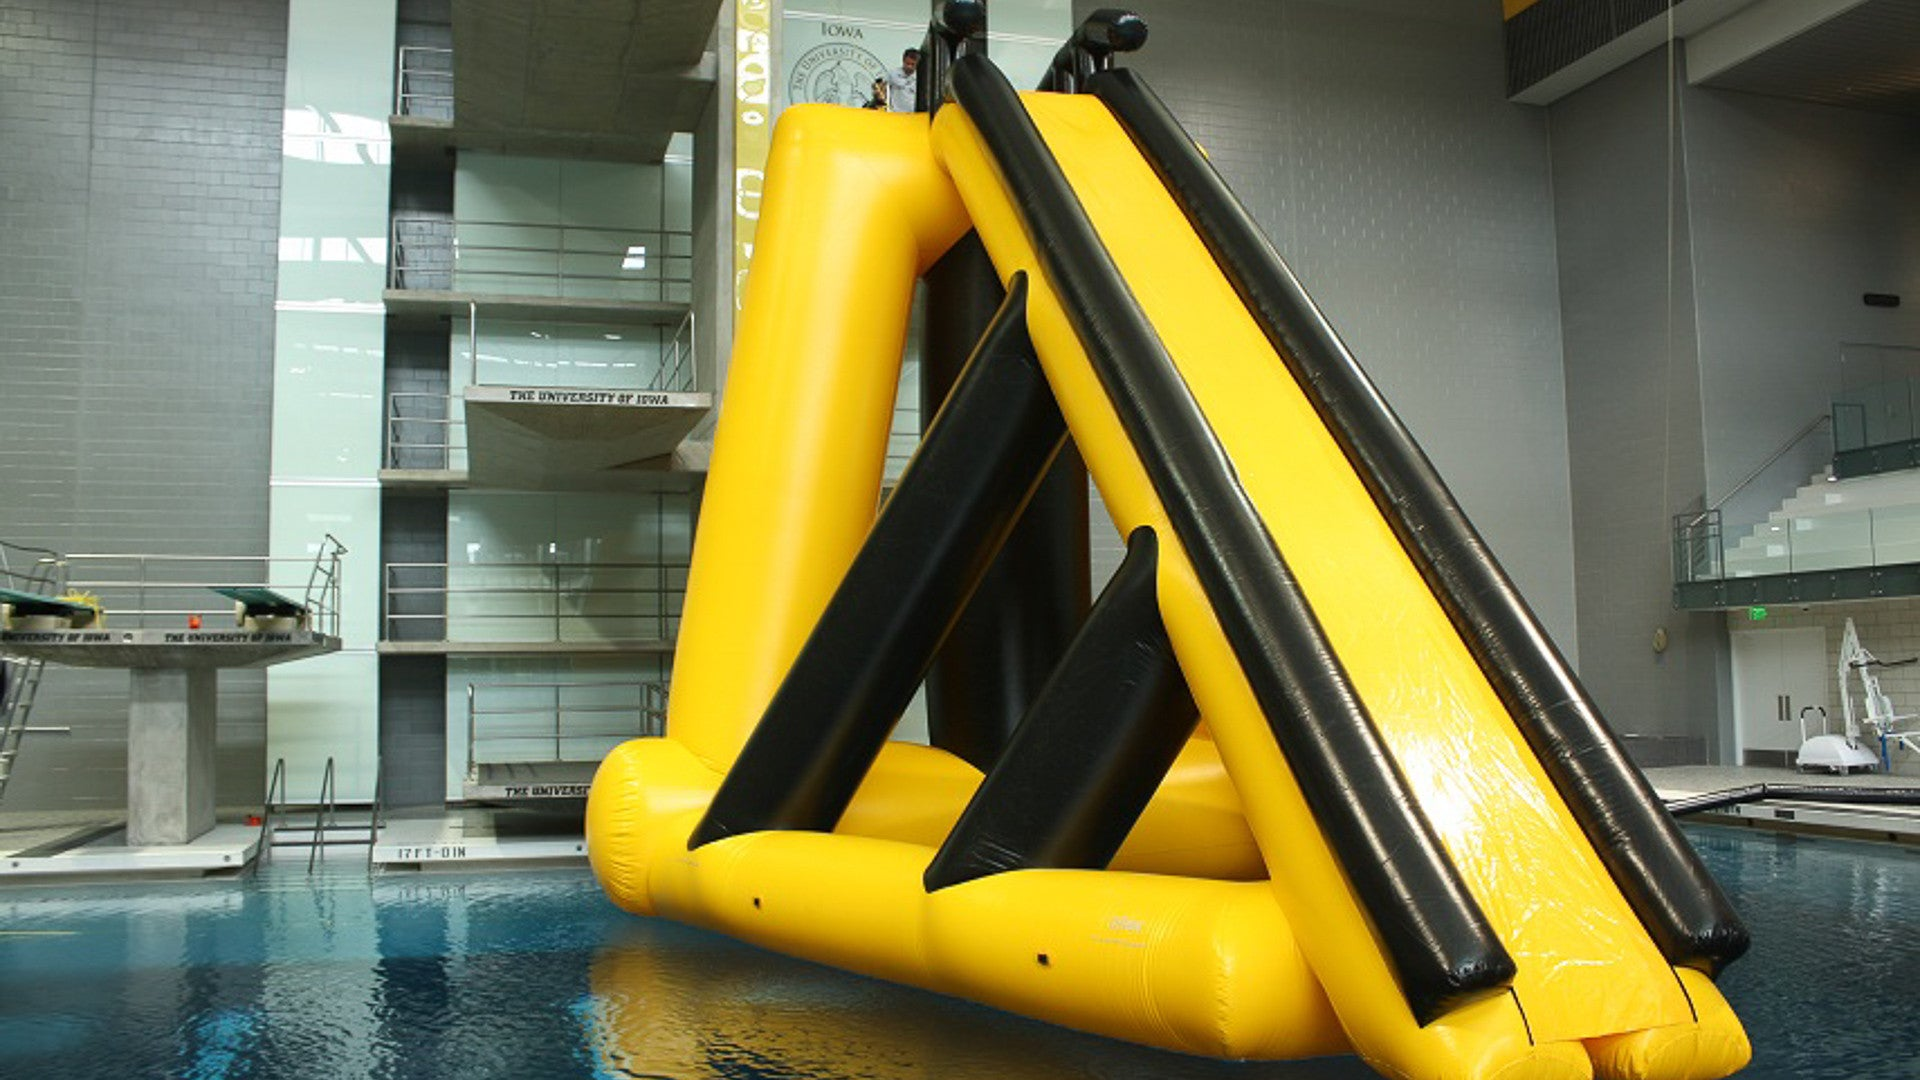 Mach II 7.5m Dive Board Slide - Pool Slides - Aflex Technology